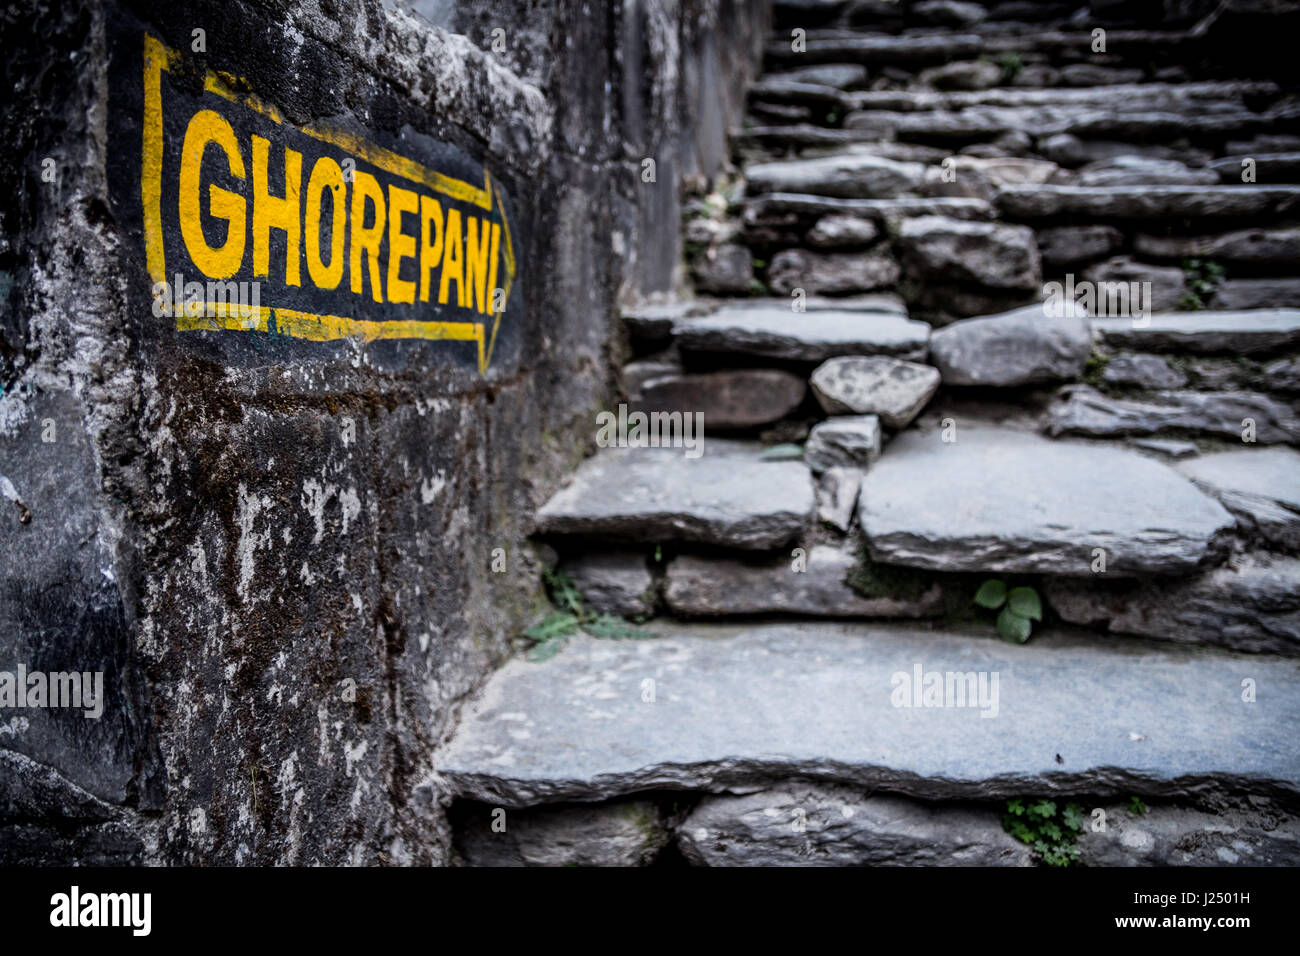 Nepal, March 2017: A sign indicates the way to Ghorepani at Birethanthi, the start of the Annapurna circuit trek - Stock Image